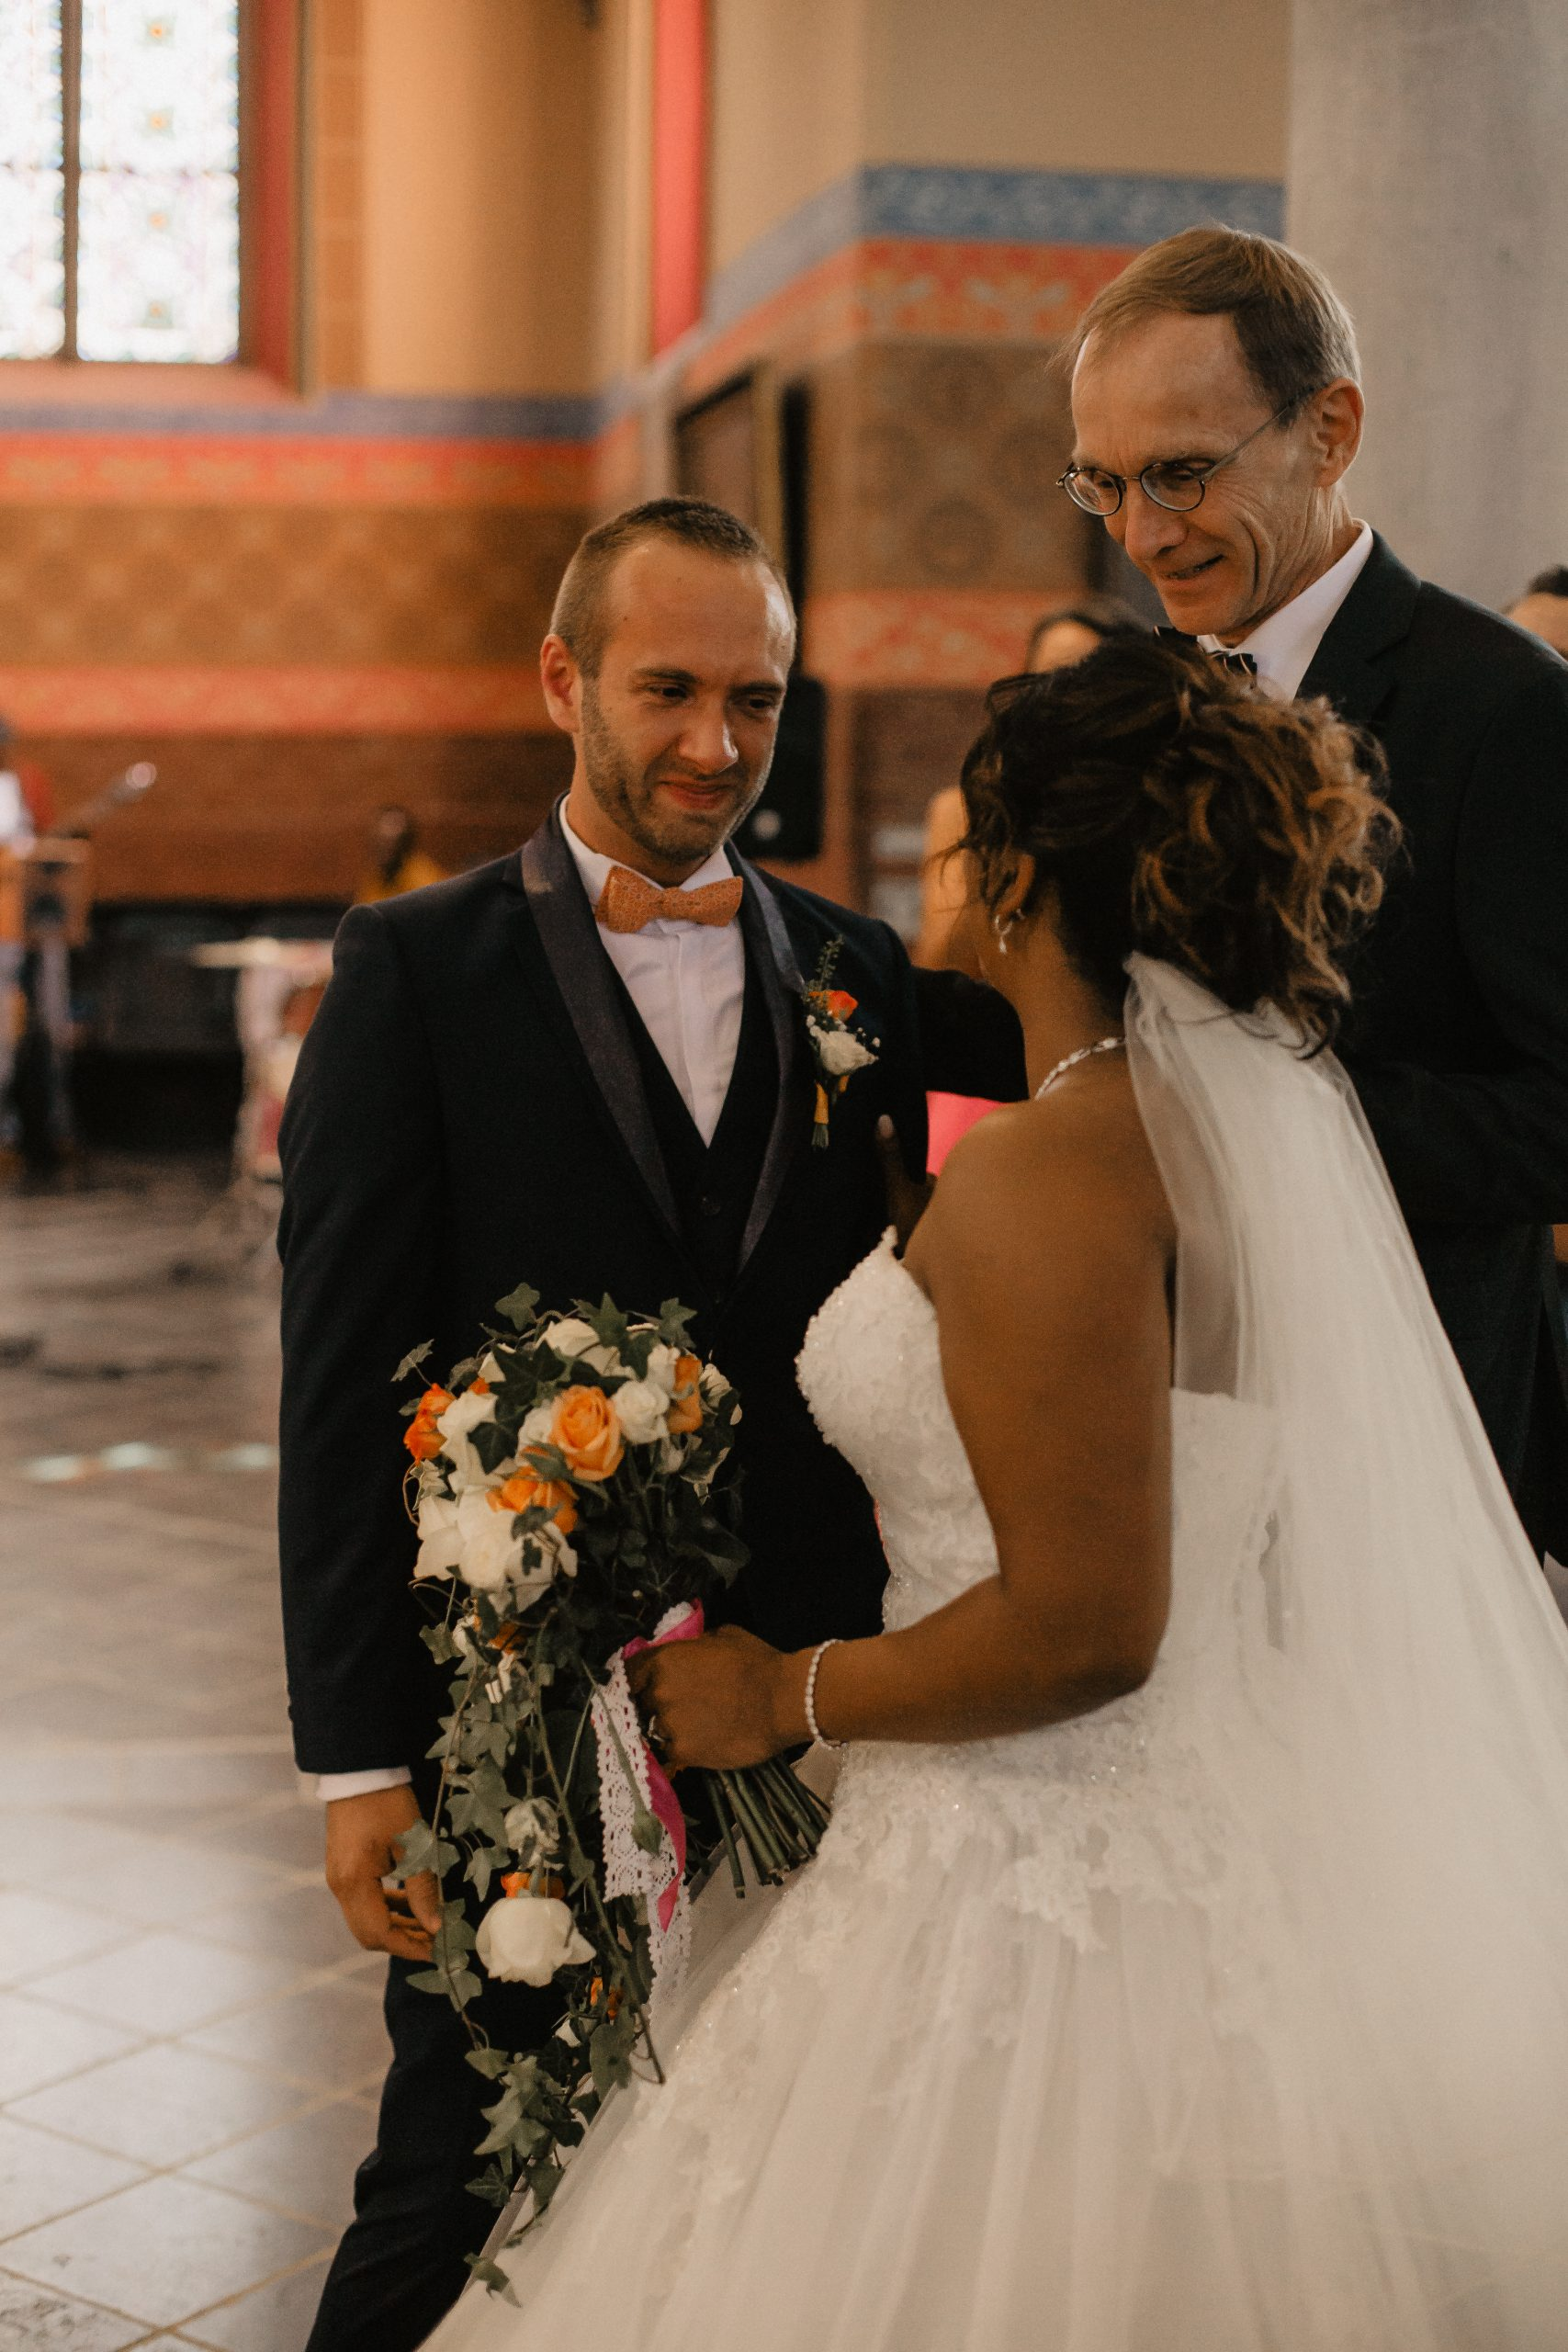 Mariage-Virginie M. Photos-couple-photos-union-amour-Croix-photographe Lille (77)